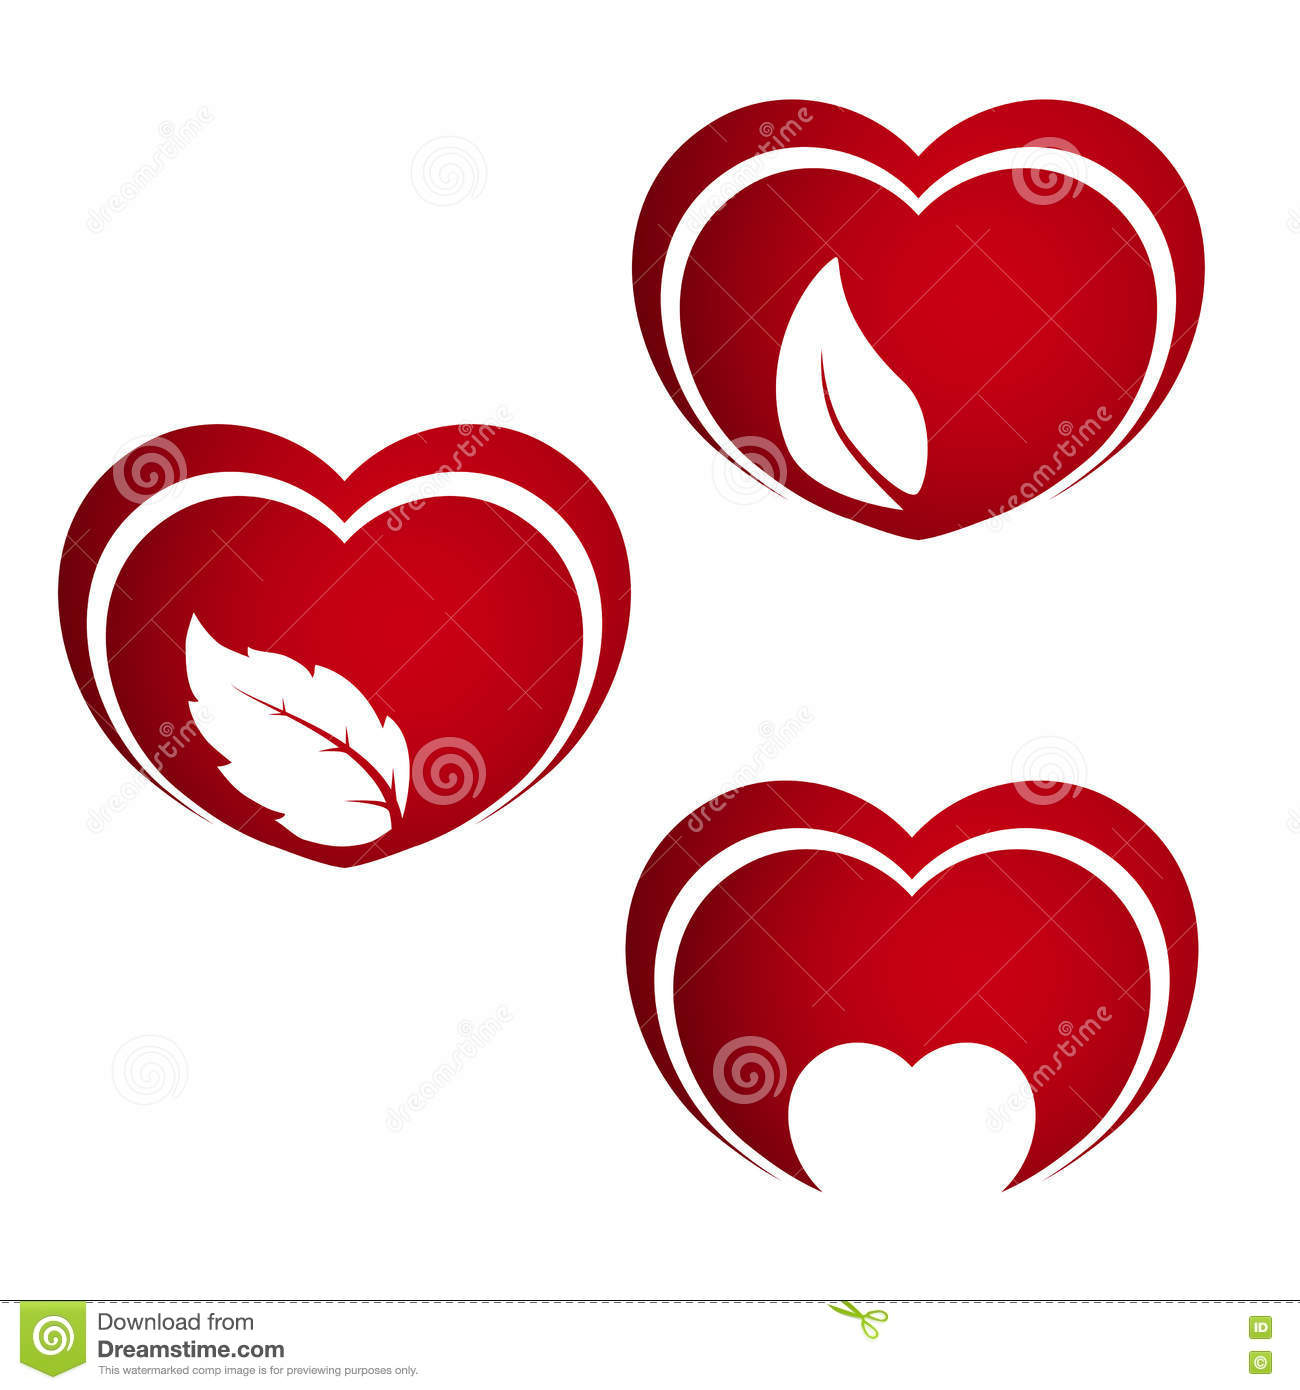 Set of red hearts symbols of natural energy heart with leaf and set of red hearts symbols of natural energy heart with leaf and small heart biocorpaavc